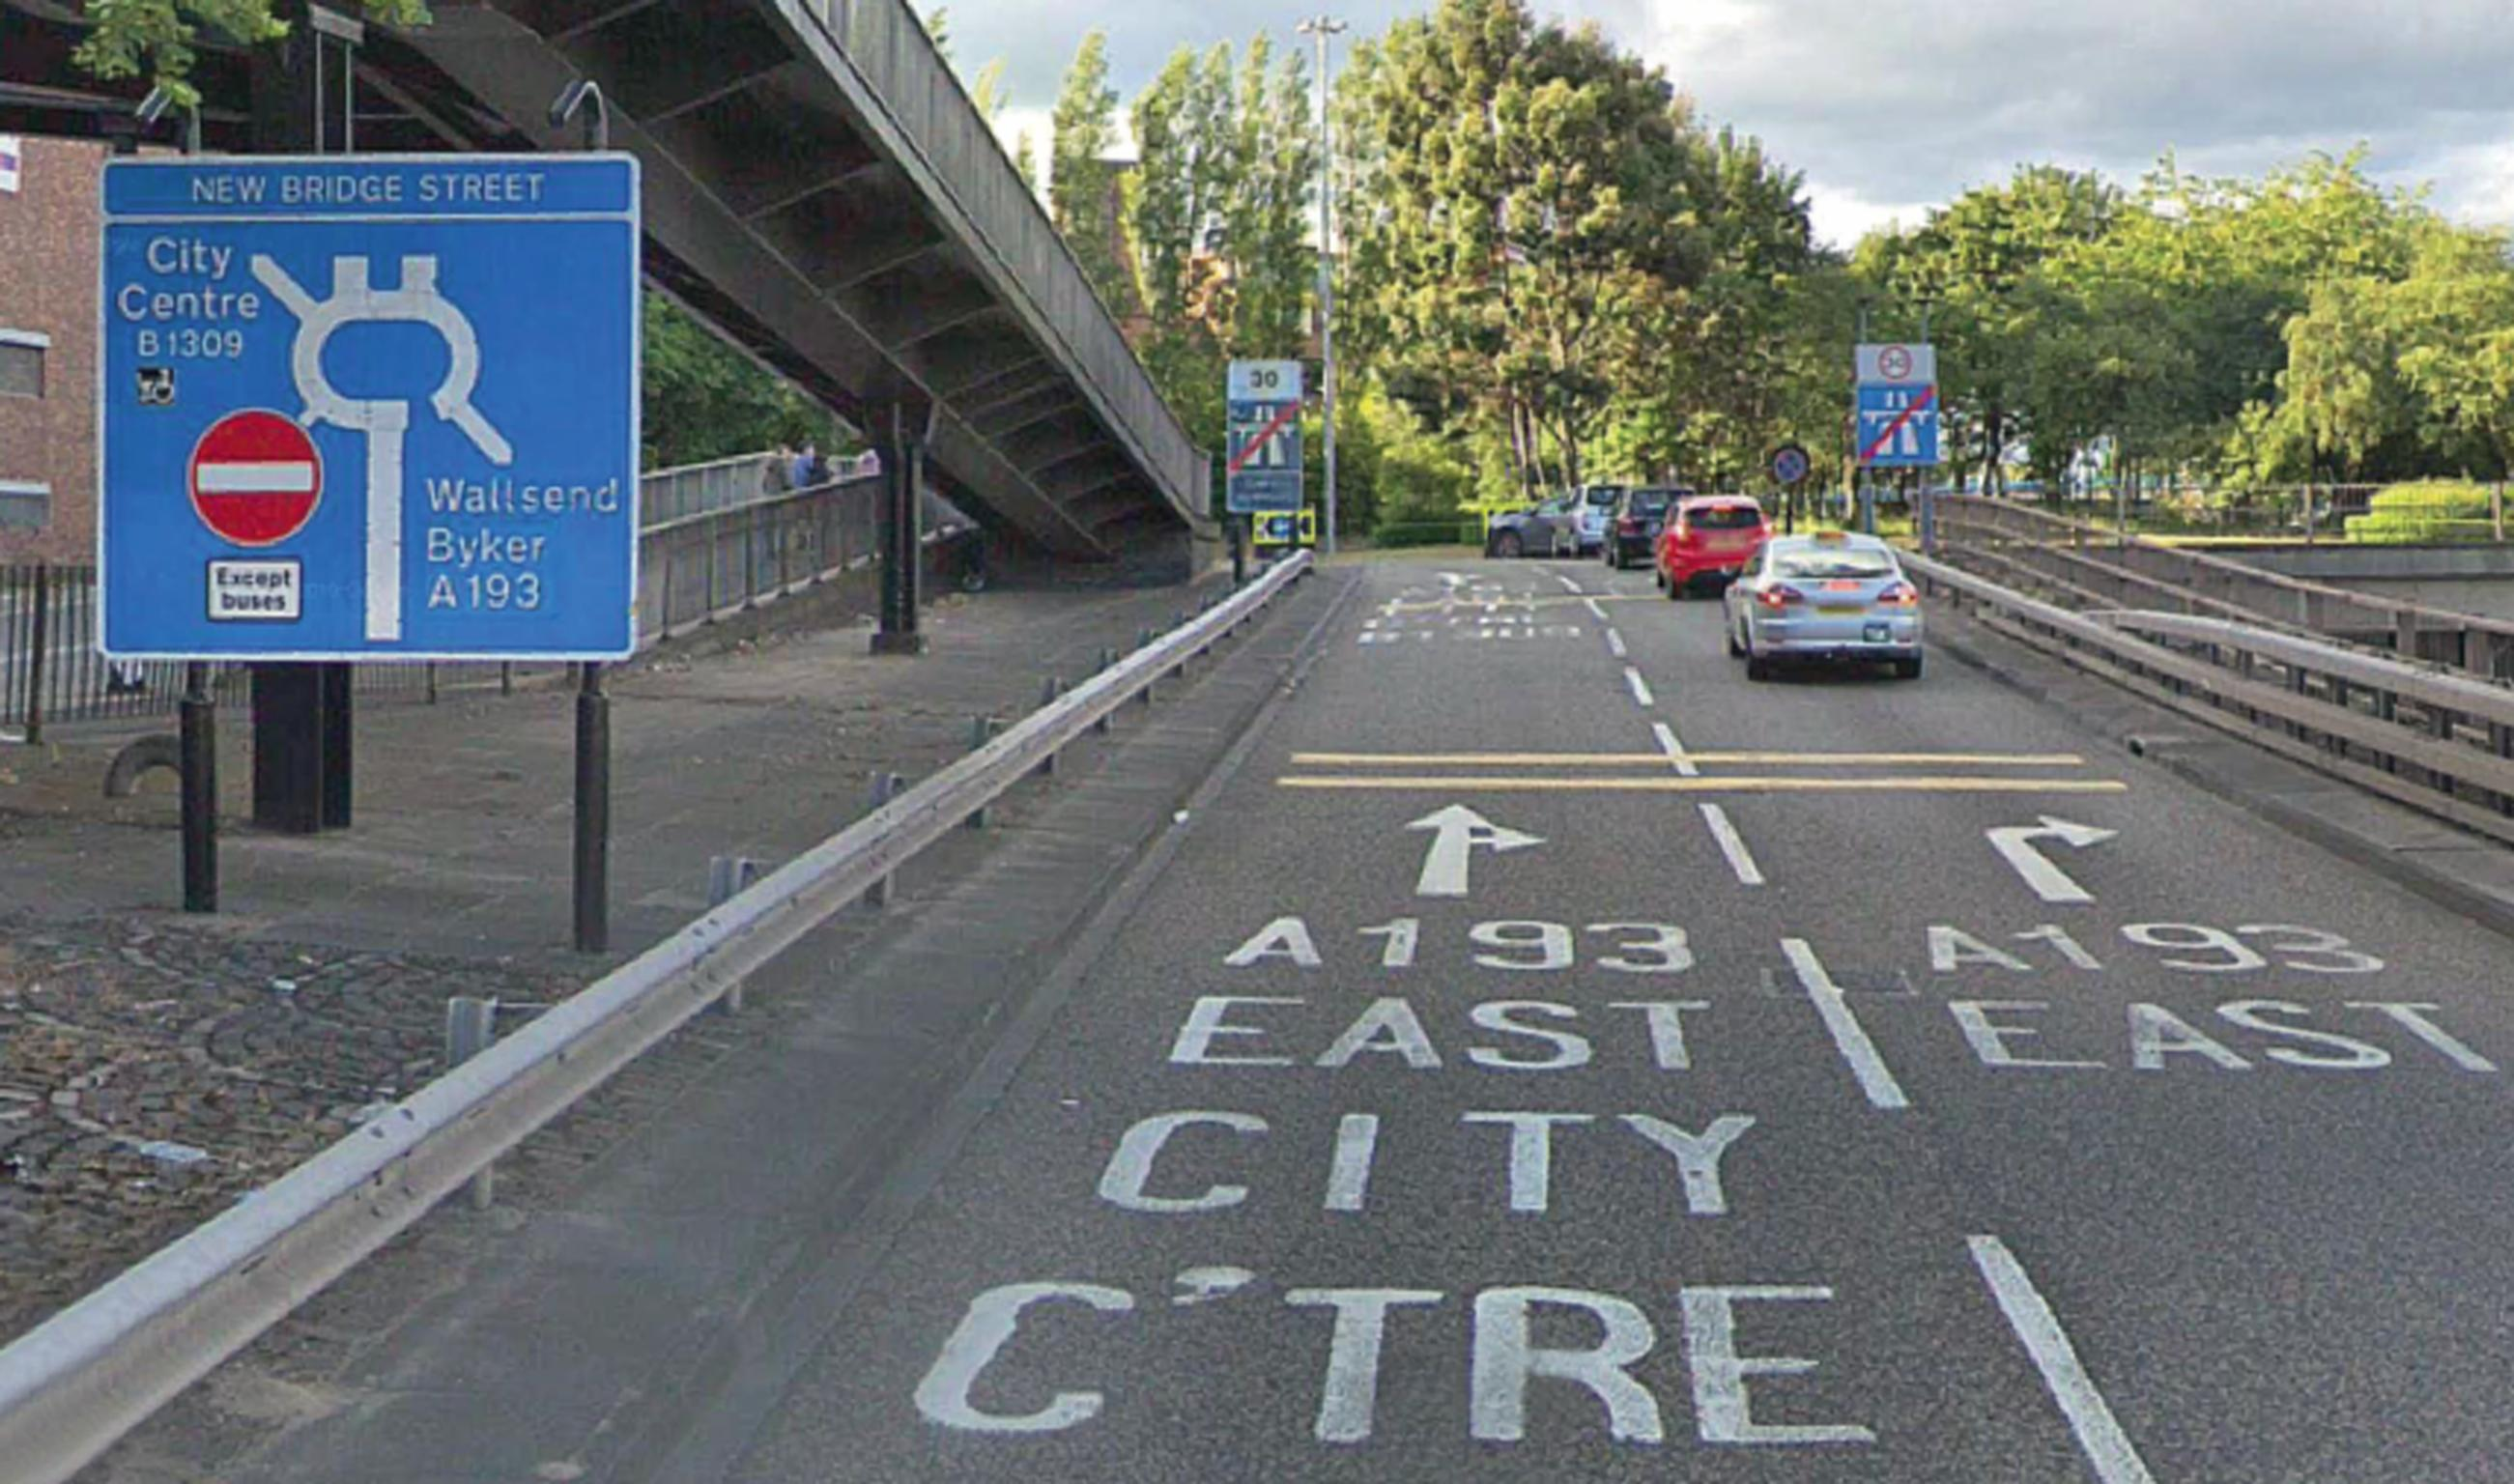 Image from the Traffic Penalty Tribunal's chief adjudicator's report: A driver's view when heading north on the slip road off the A167(M) approaching the roundabout with a sign indicating 'City Centre B1309', accompanied by Shopmobility graphic (Google Street View, June 2018)